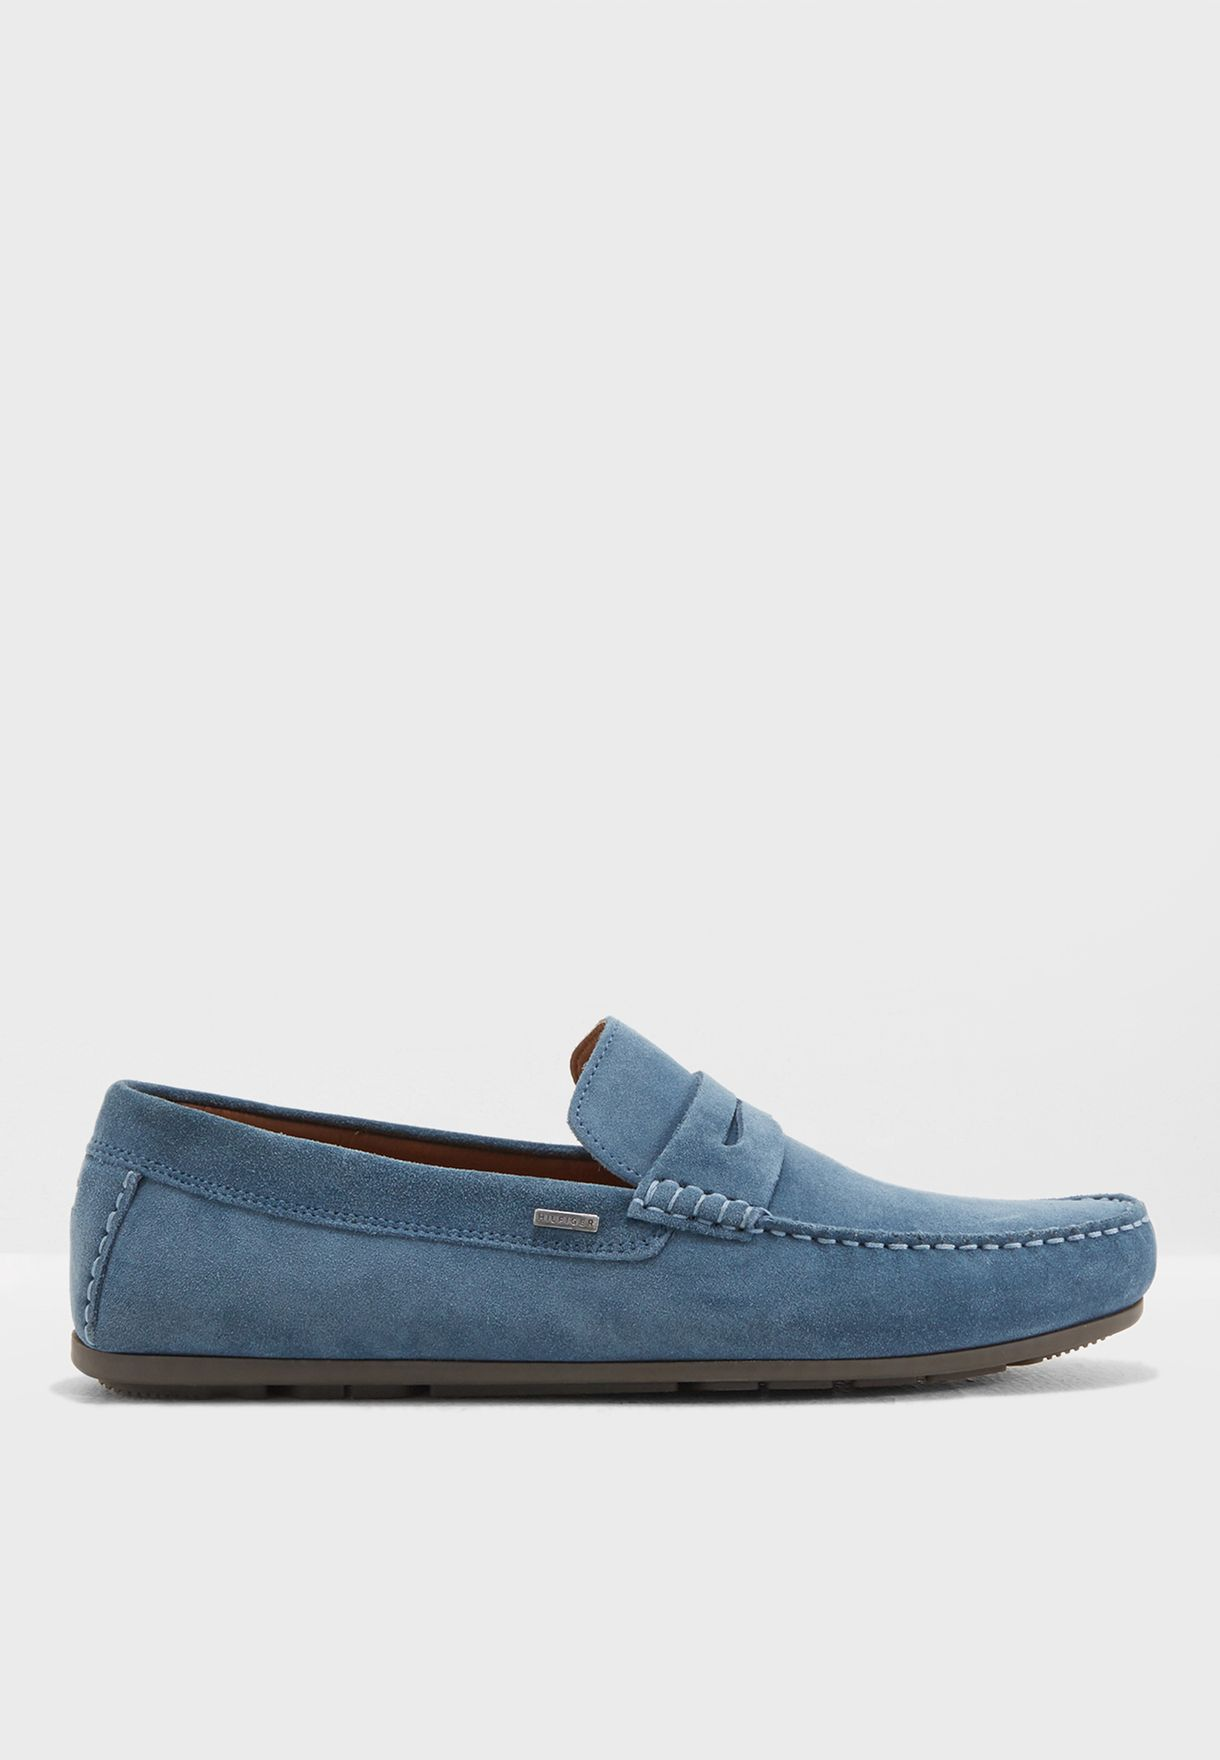 b3902f206d70 Shop Tommy Hilfiger blue Classic Penny Loafers FM0FM01168013 for Men ...